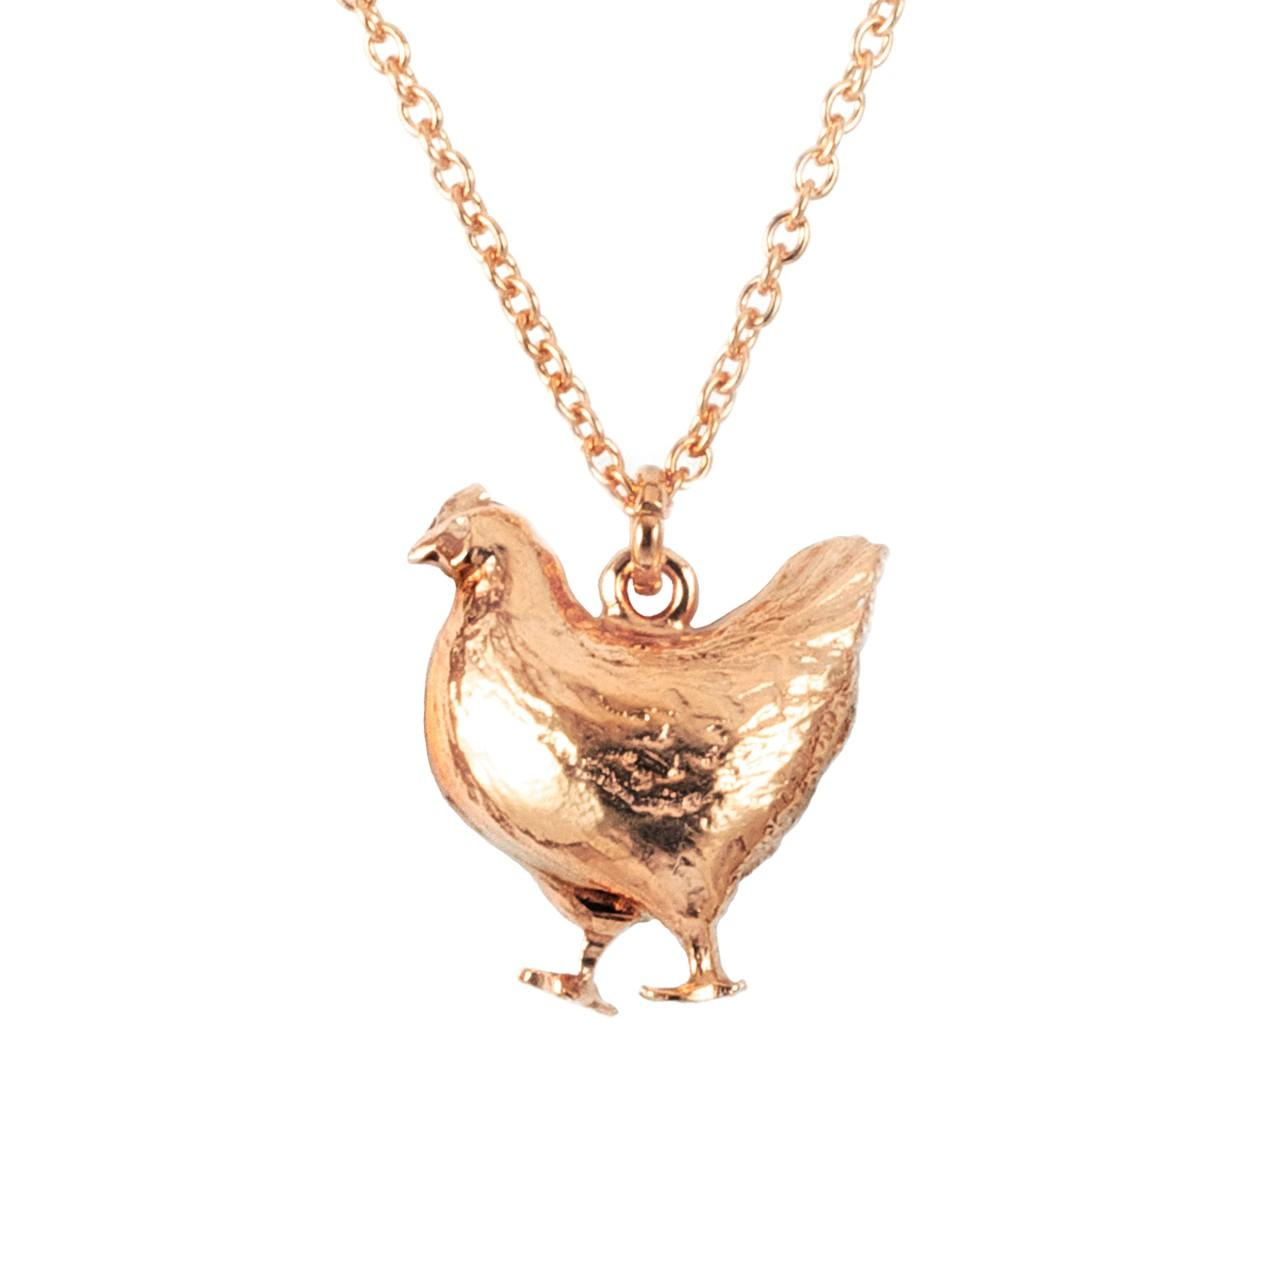 Rose gold plated fat hen necklace £132 (available in store only)